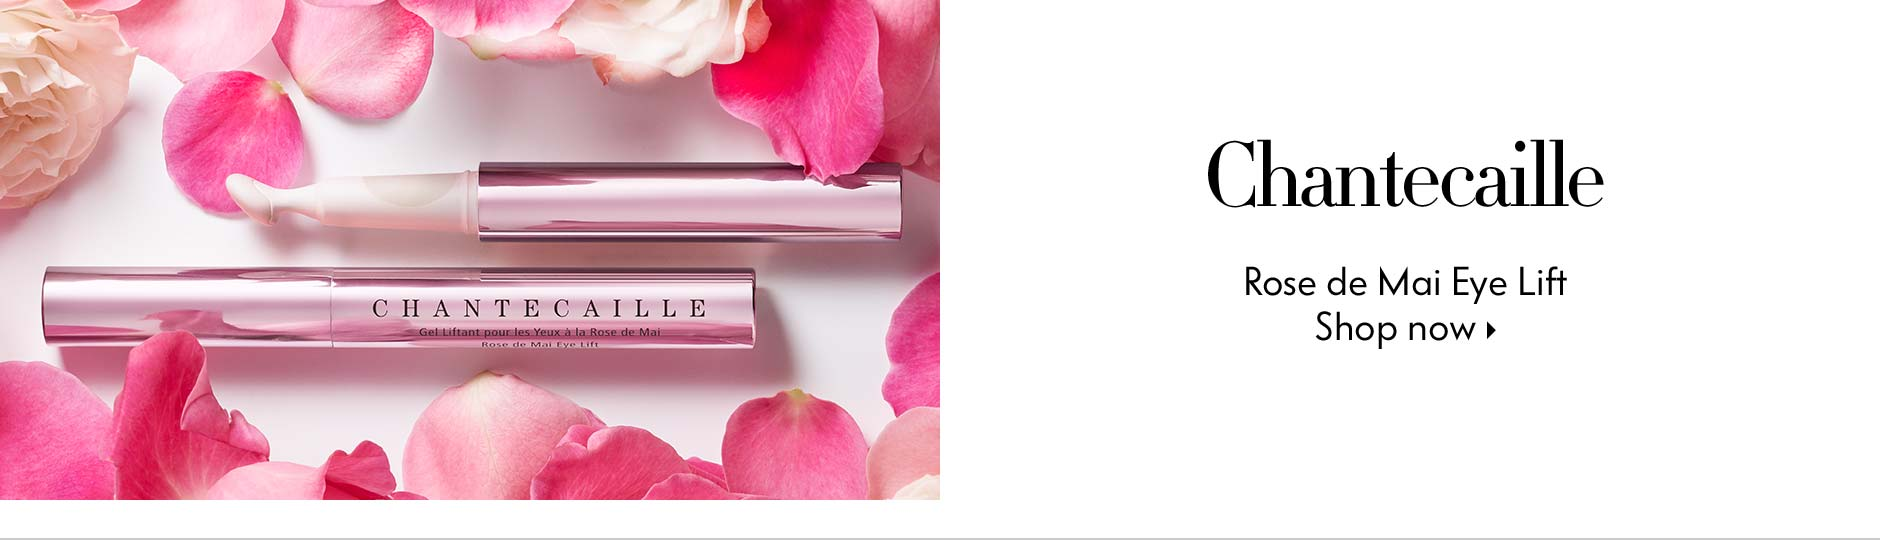 Chantecaille - Rose de mai eye lift - shop now